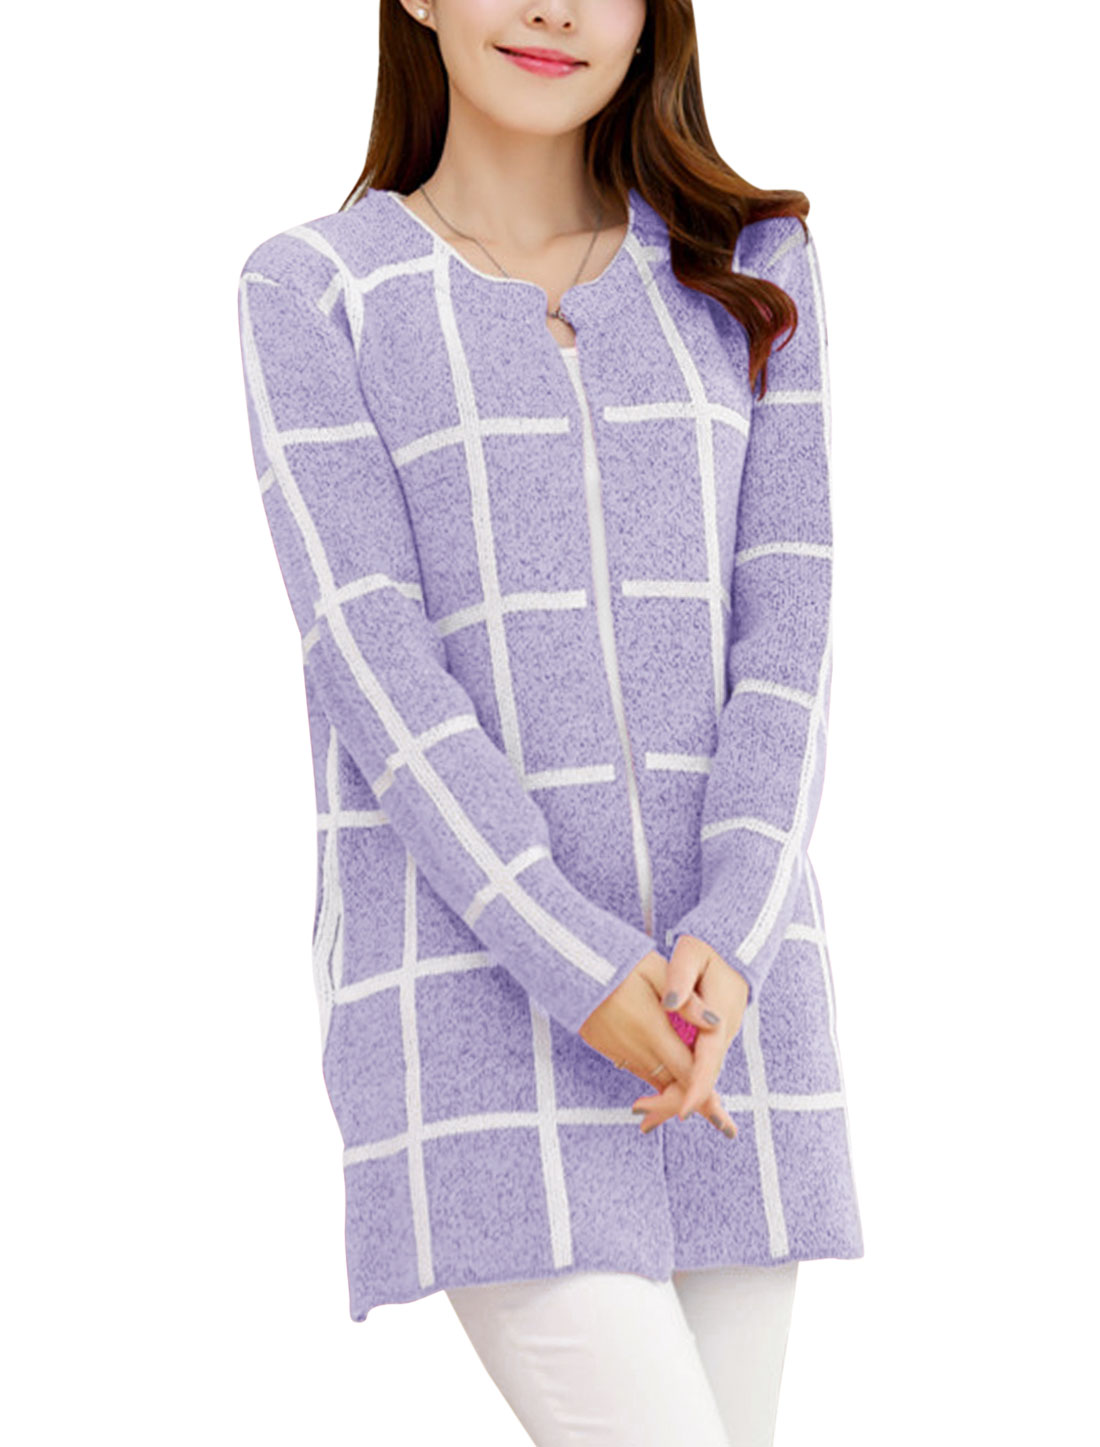 Ladies Round Neckline Buttonless Stretchy Open Cardigan Violet S